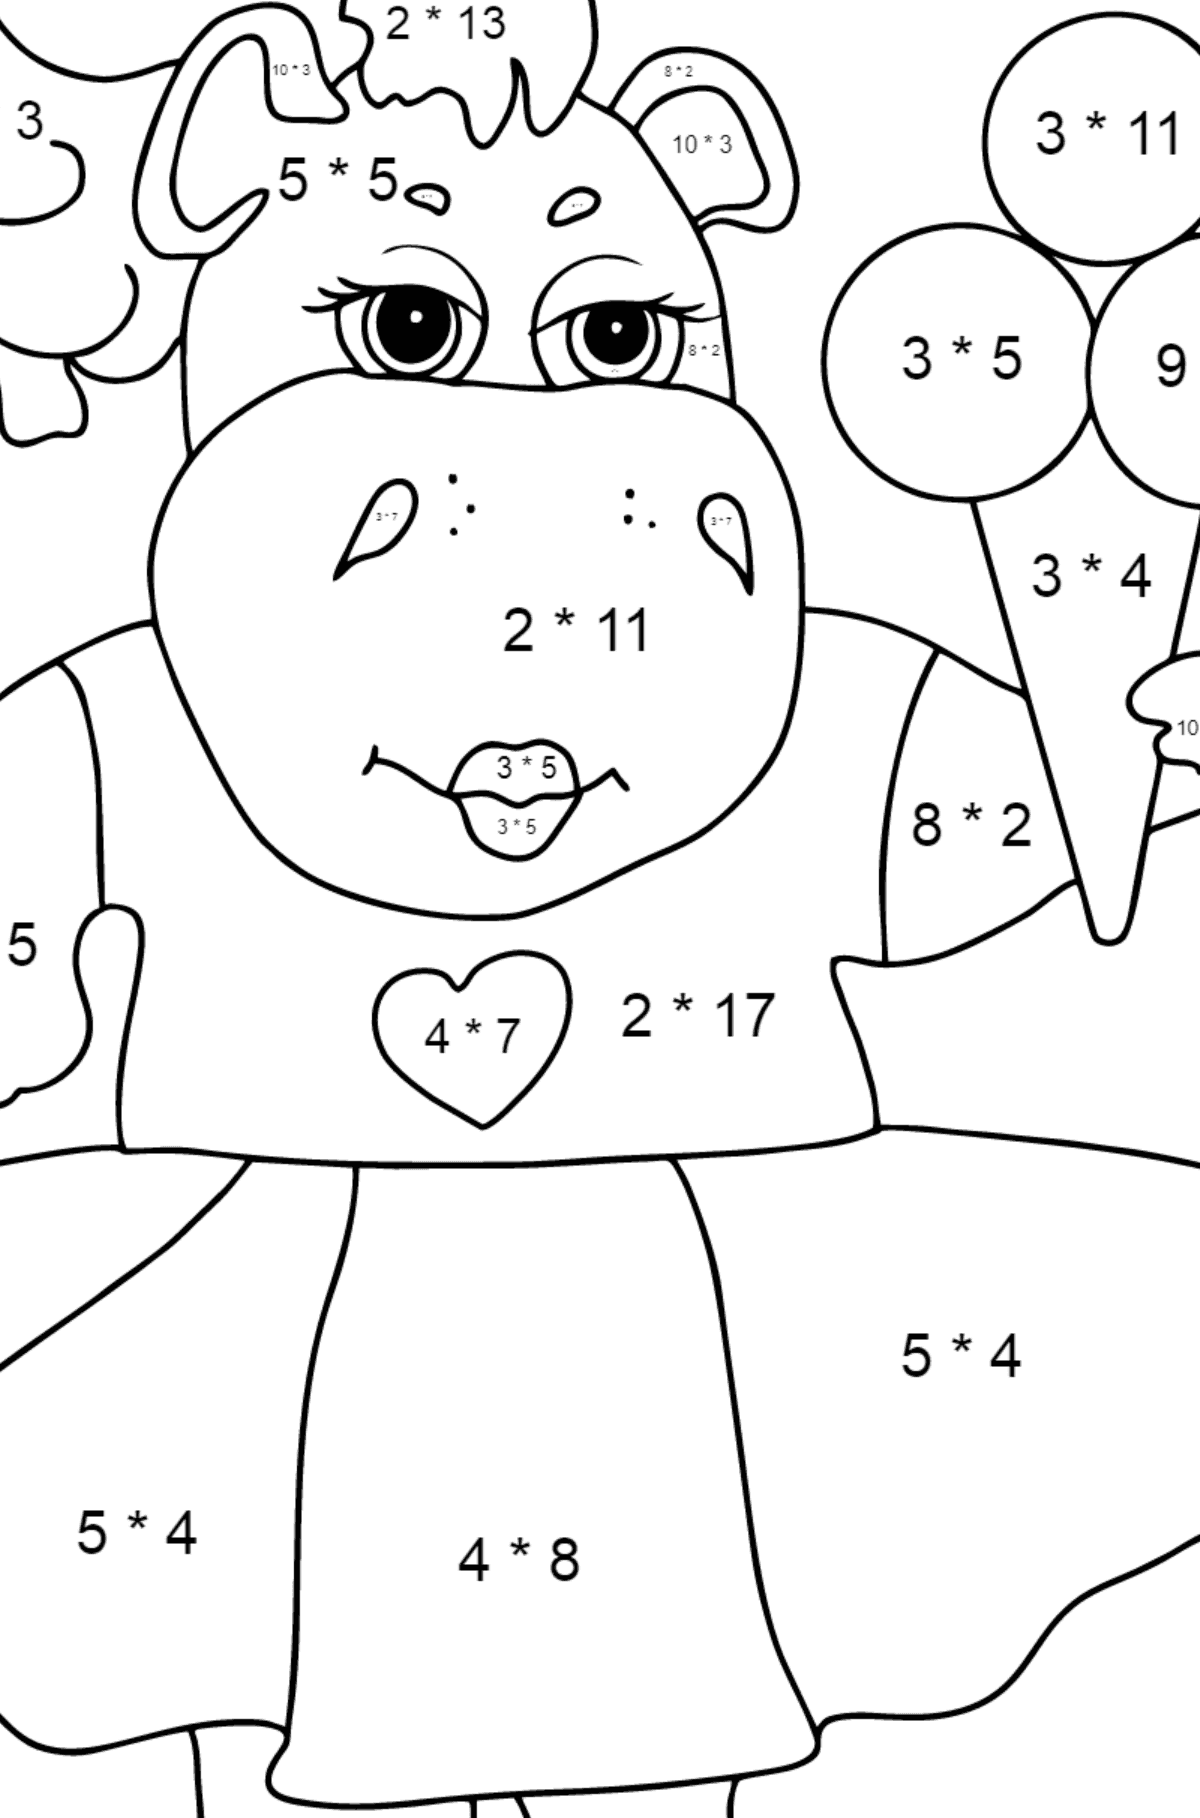 A Hippo and Tasty Ice Cream for Kids - Math Coloring By Multiplication